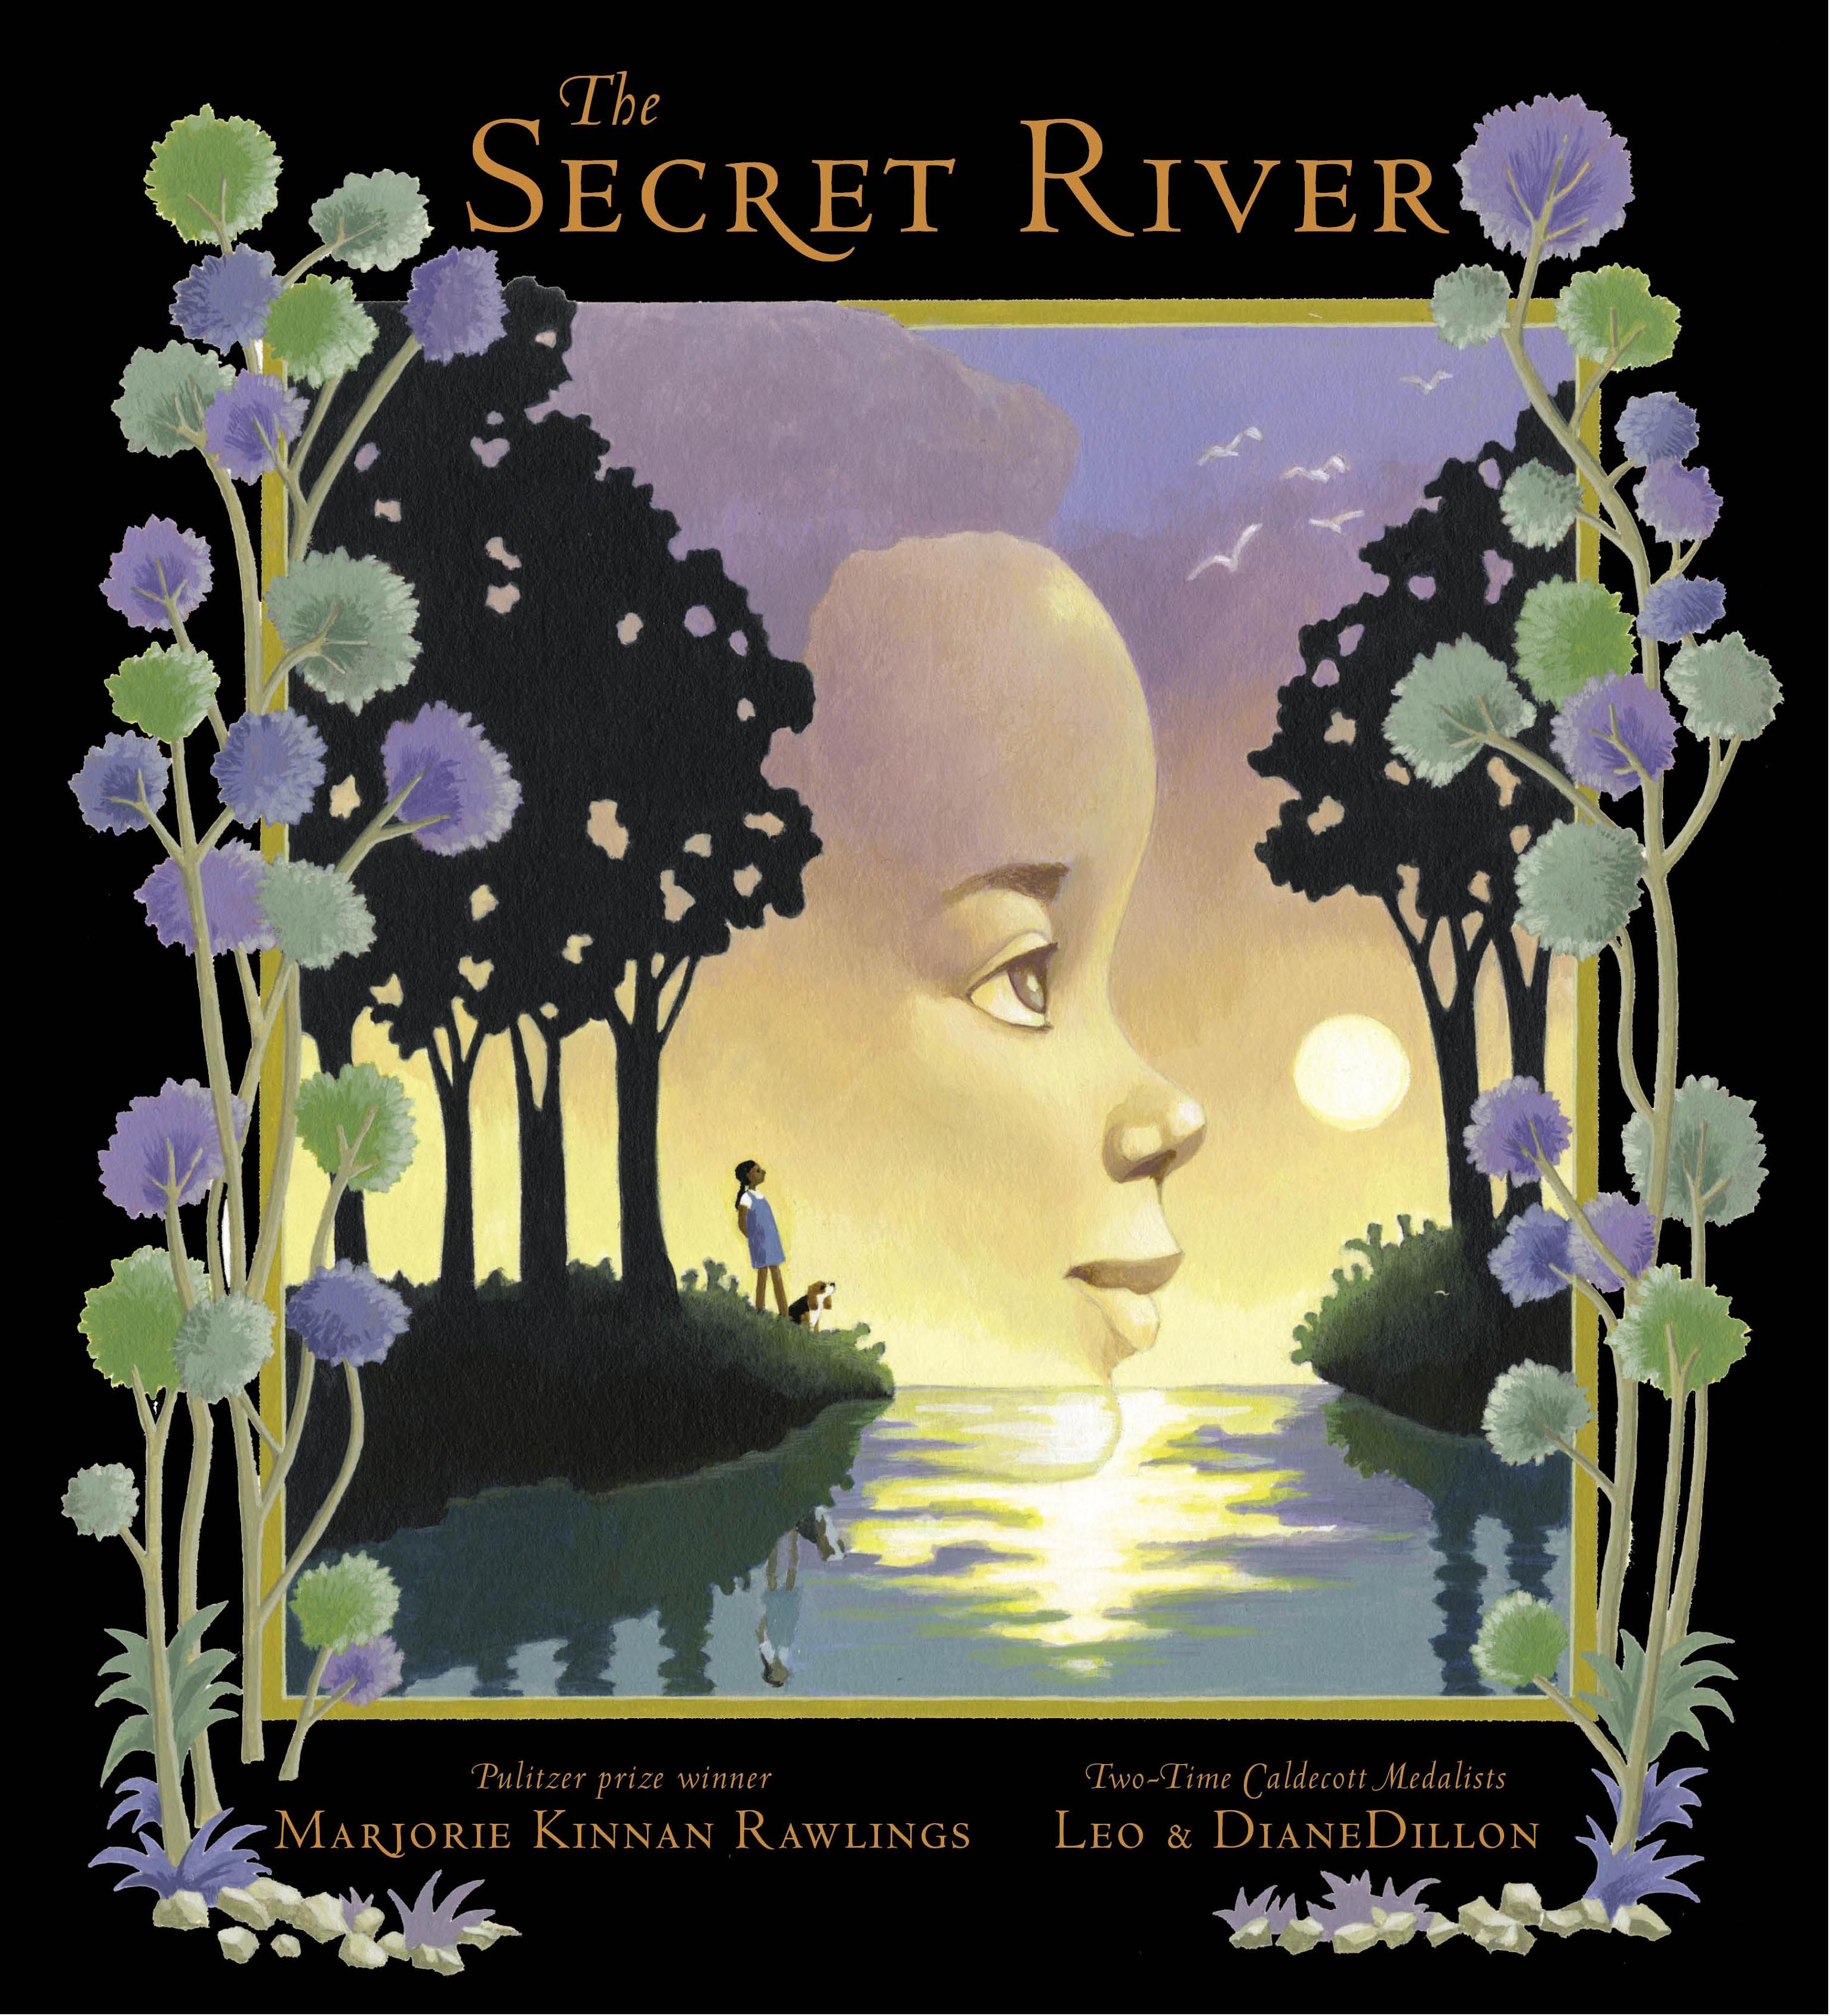 Book Cover Image (jpg): The Secret River